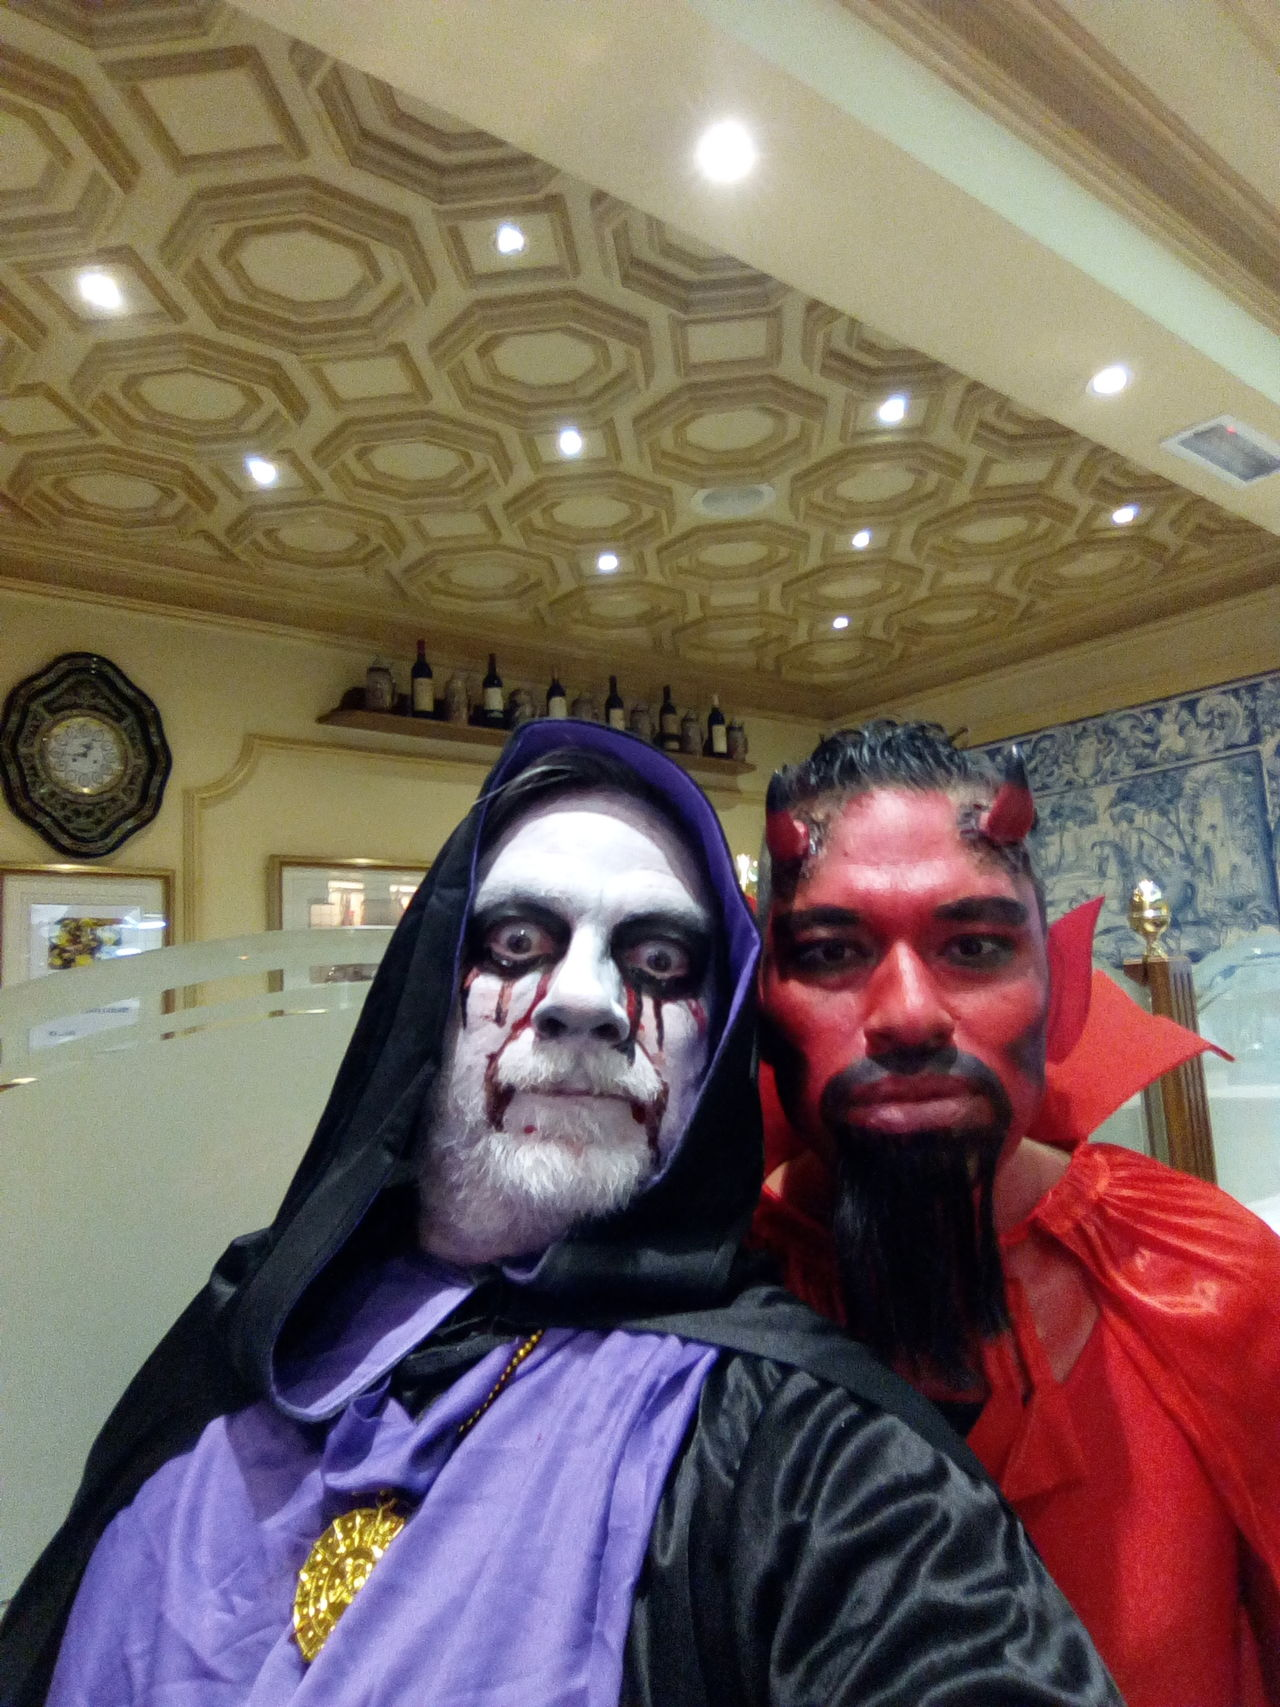 Men Looking At Camera Real People Bizarre Lifestyles Portrait Indoors  Facial Expression Two People Spirituality Make-up Celebration Leisure Activity Women Adults Only Well-dressed Adult People fancy dress Dark Lord Selfieoftheday Madrid WePLUS Weimei Plus WeiMei Smart Phone Weimei